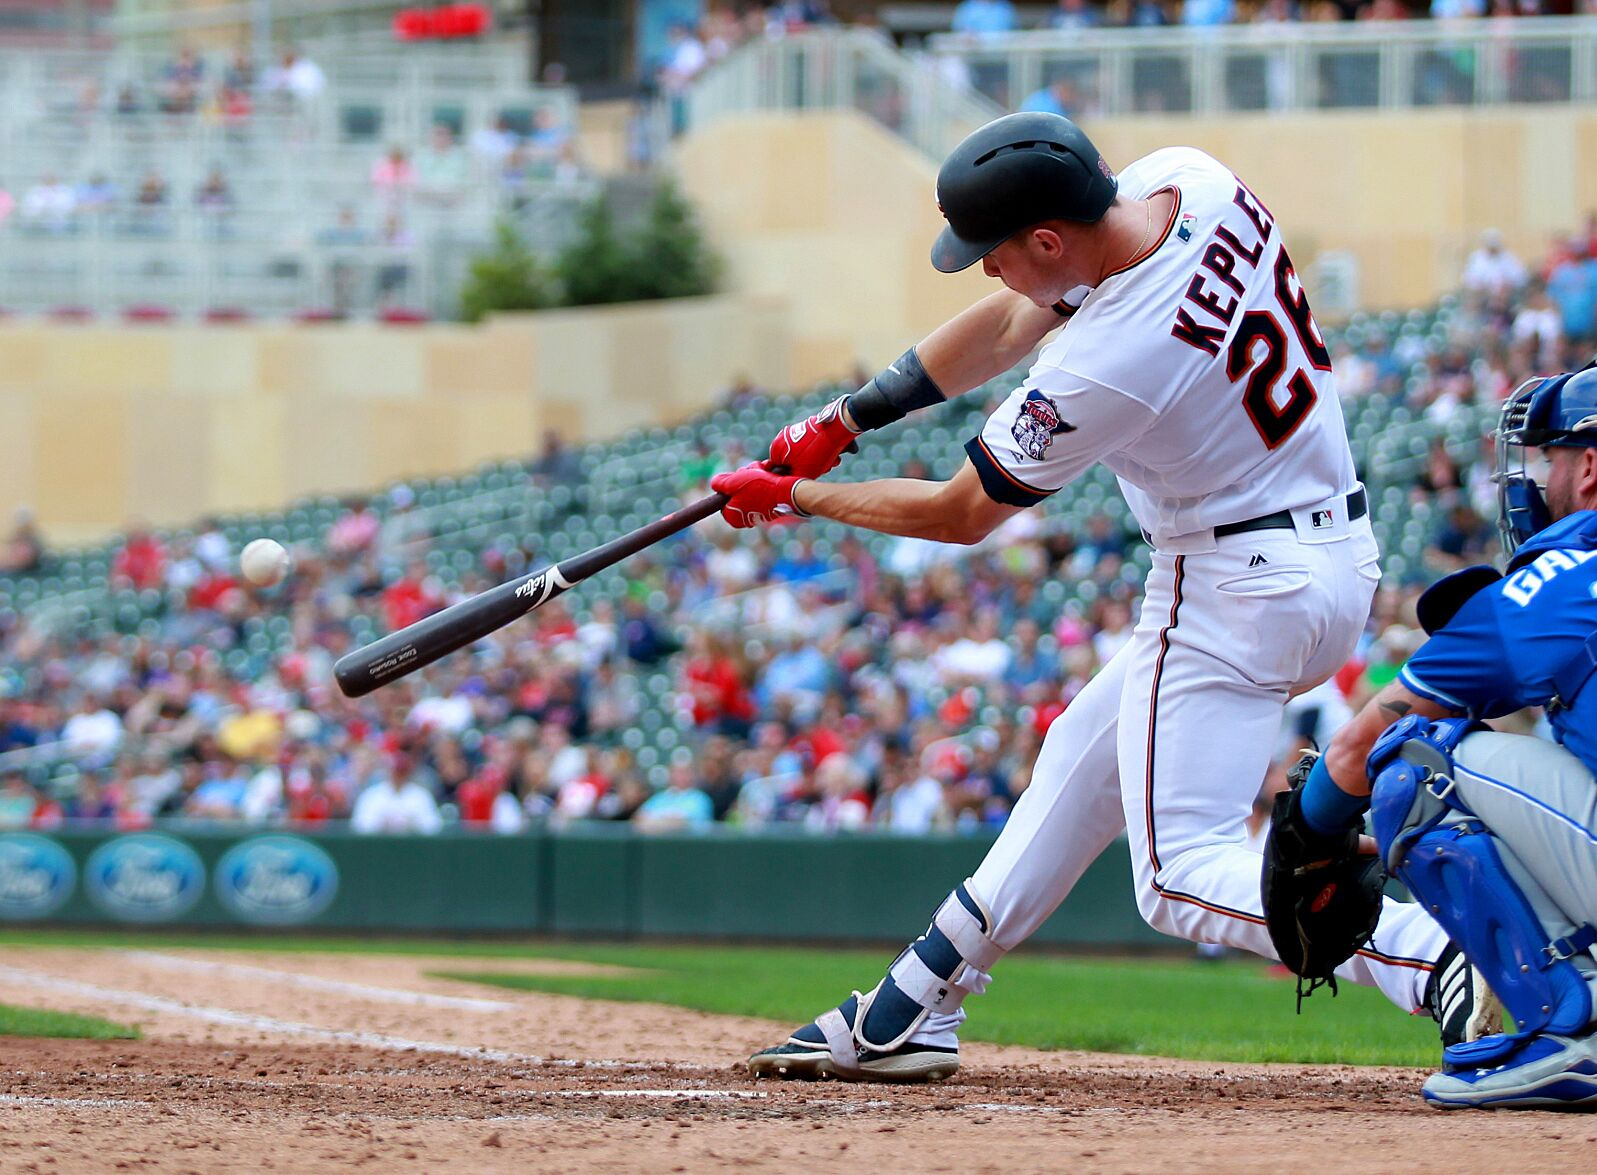 cb6db393669 MINNEAPOLIS, MN – SEPTEMBER 9: Minnesota Twins' Max Kepler hits a double  against the Kansas City Royals in the ninth inning during their baseball  game on ...